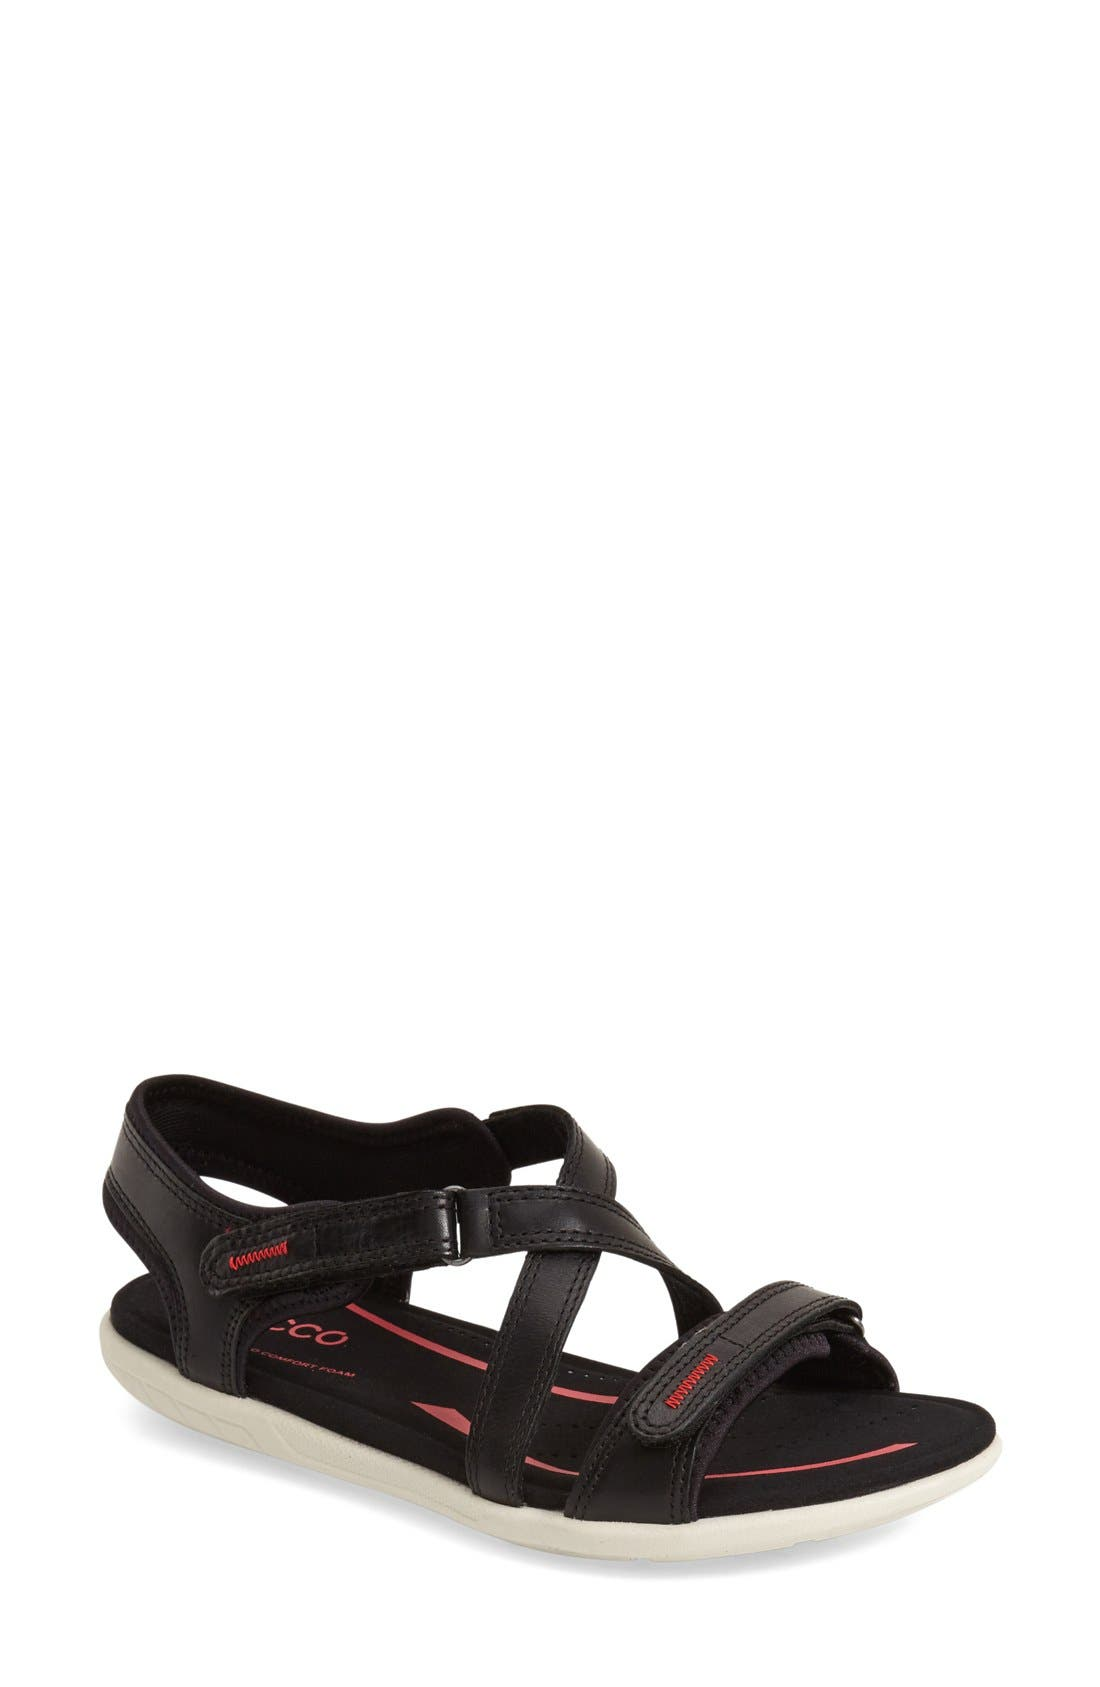 'Bluma' Sport Sandal,                         Main,                         color, 001